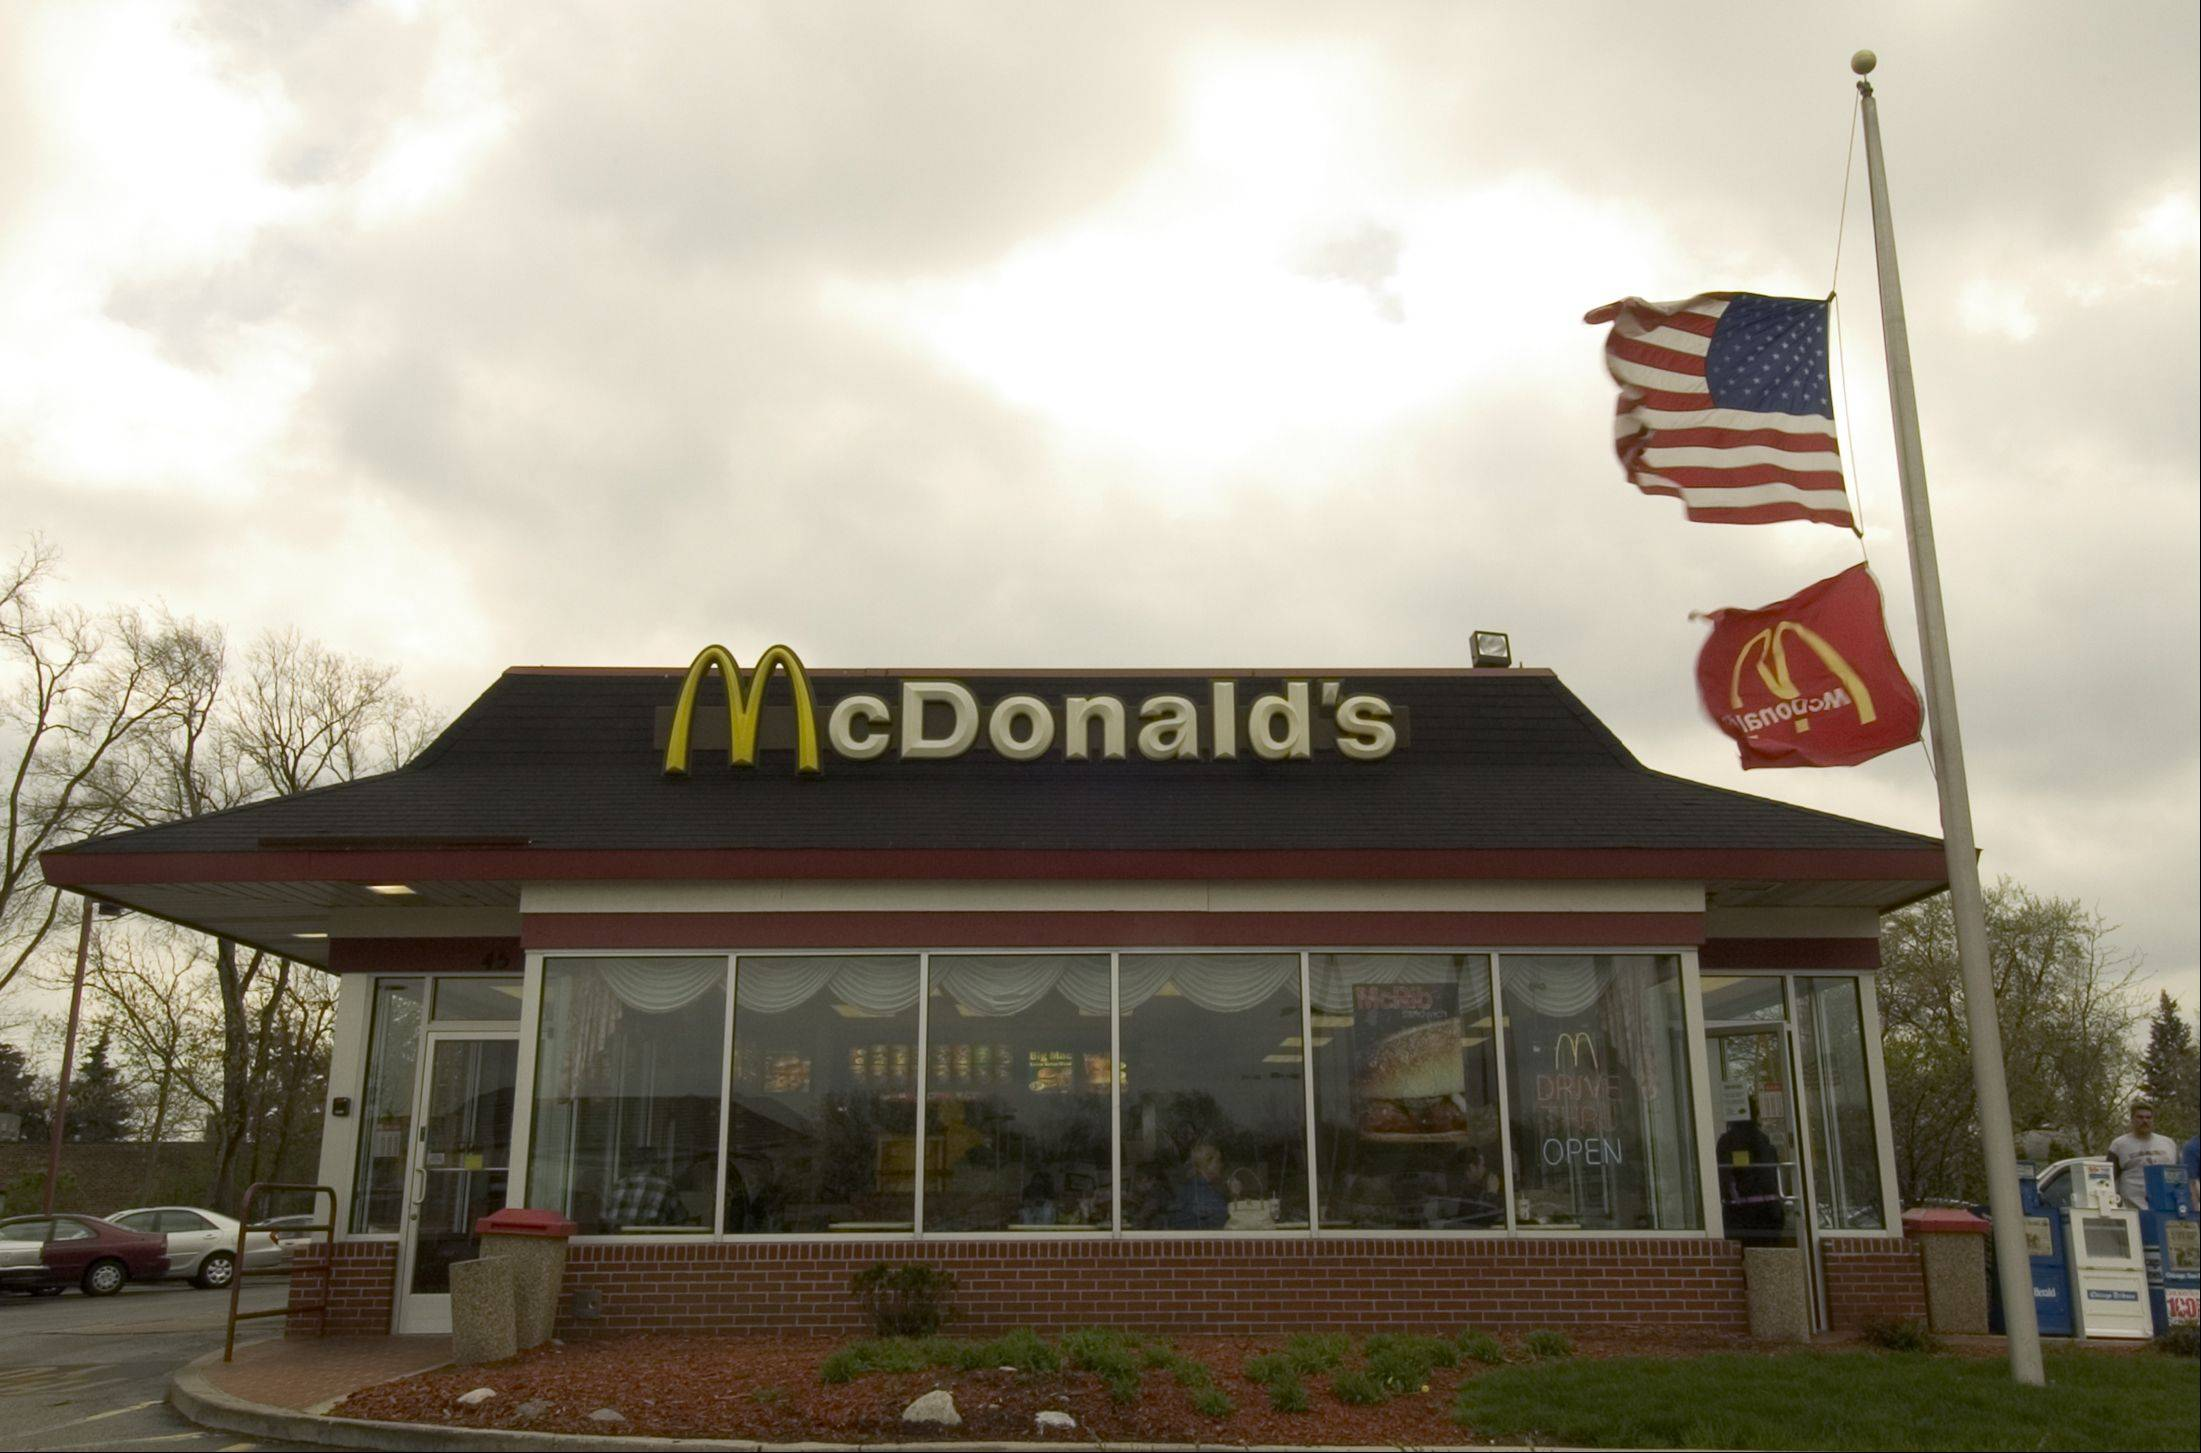 Oak Brook-based McDonald's Corp. says a key revenue figure rose 1.9 percent in August, driven by a strong performance in Europe and its Monopoly promotion in the United States.